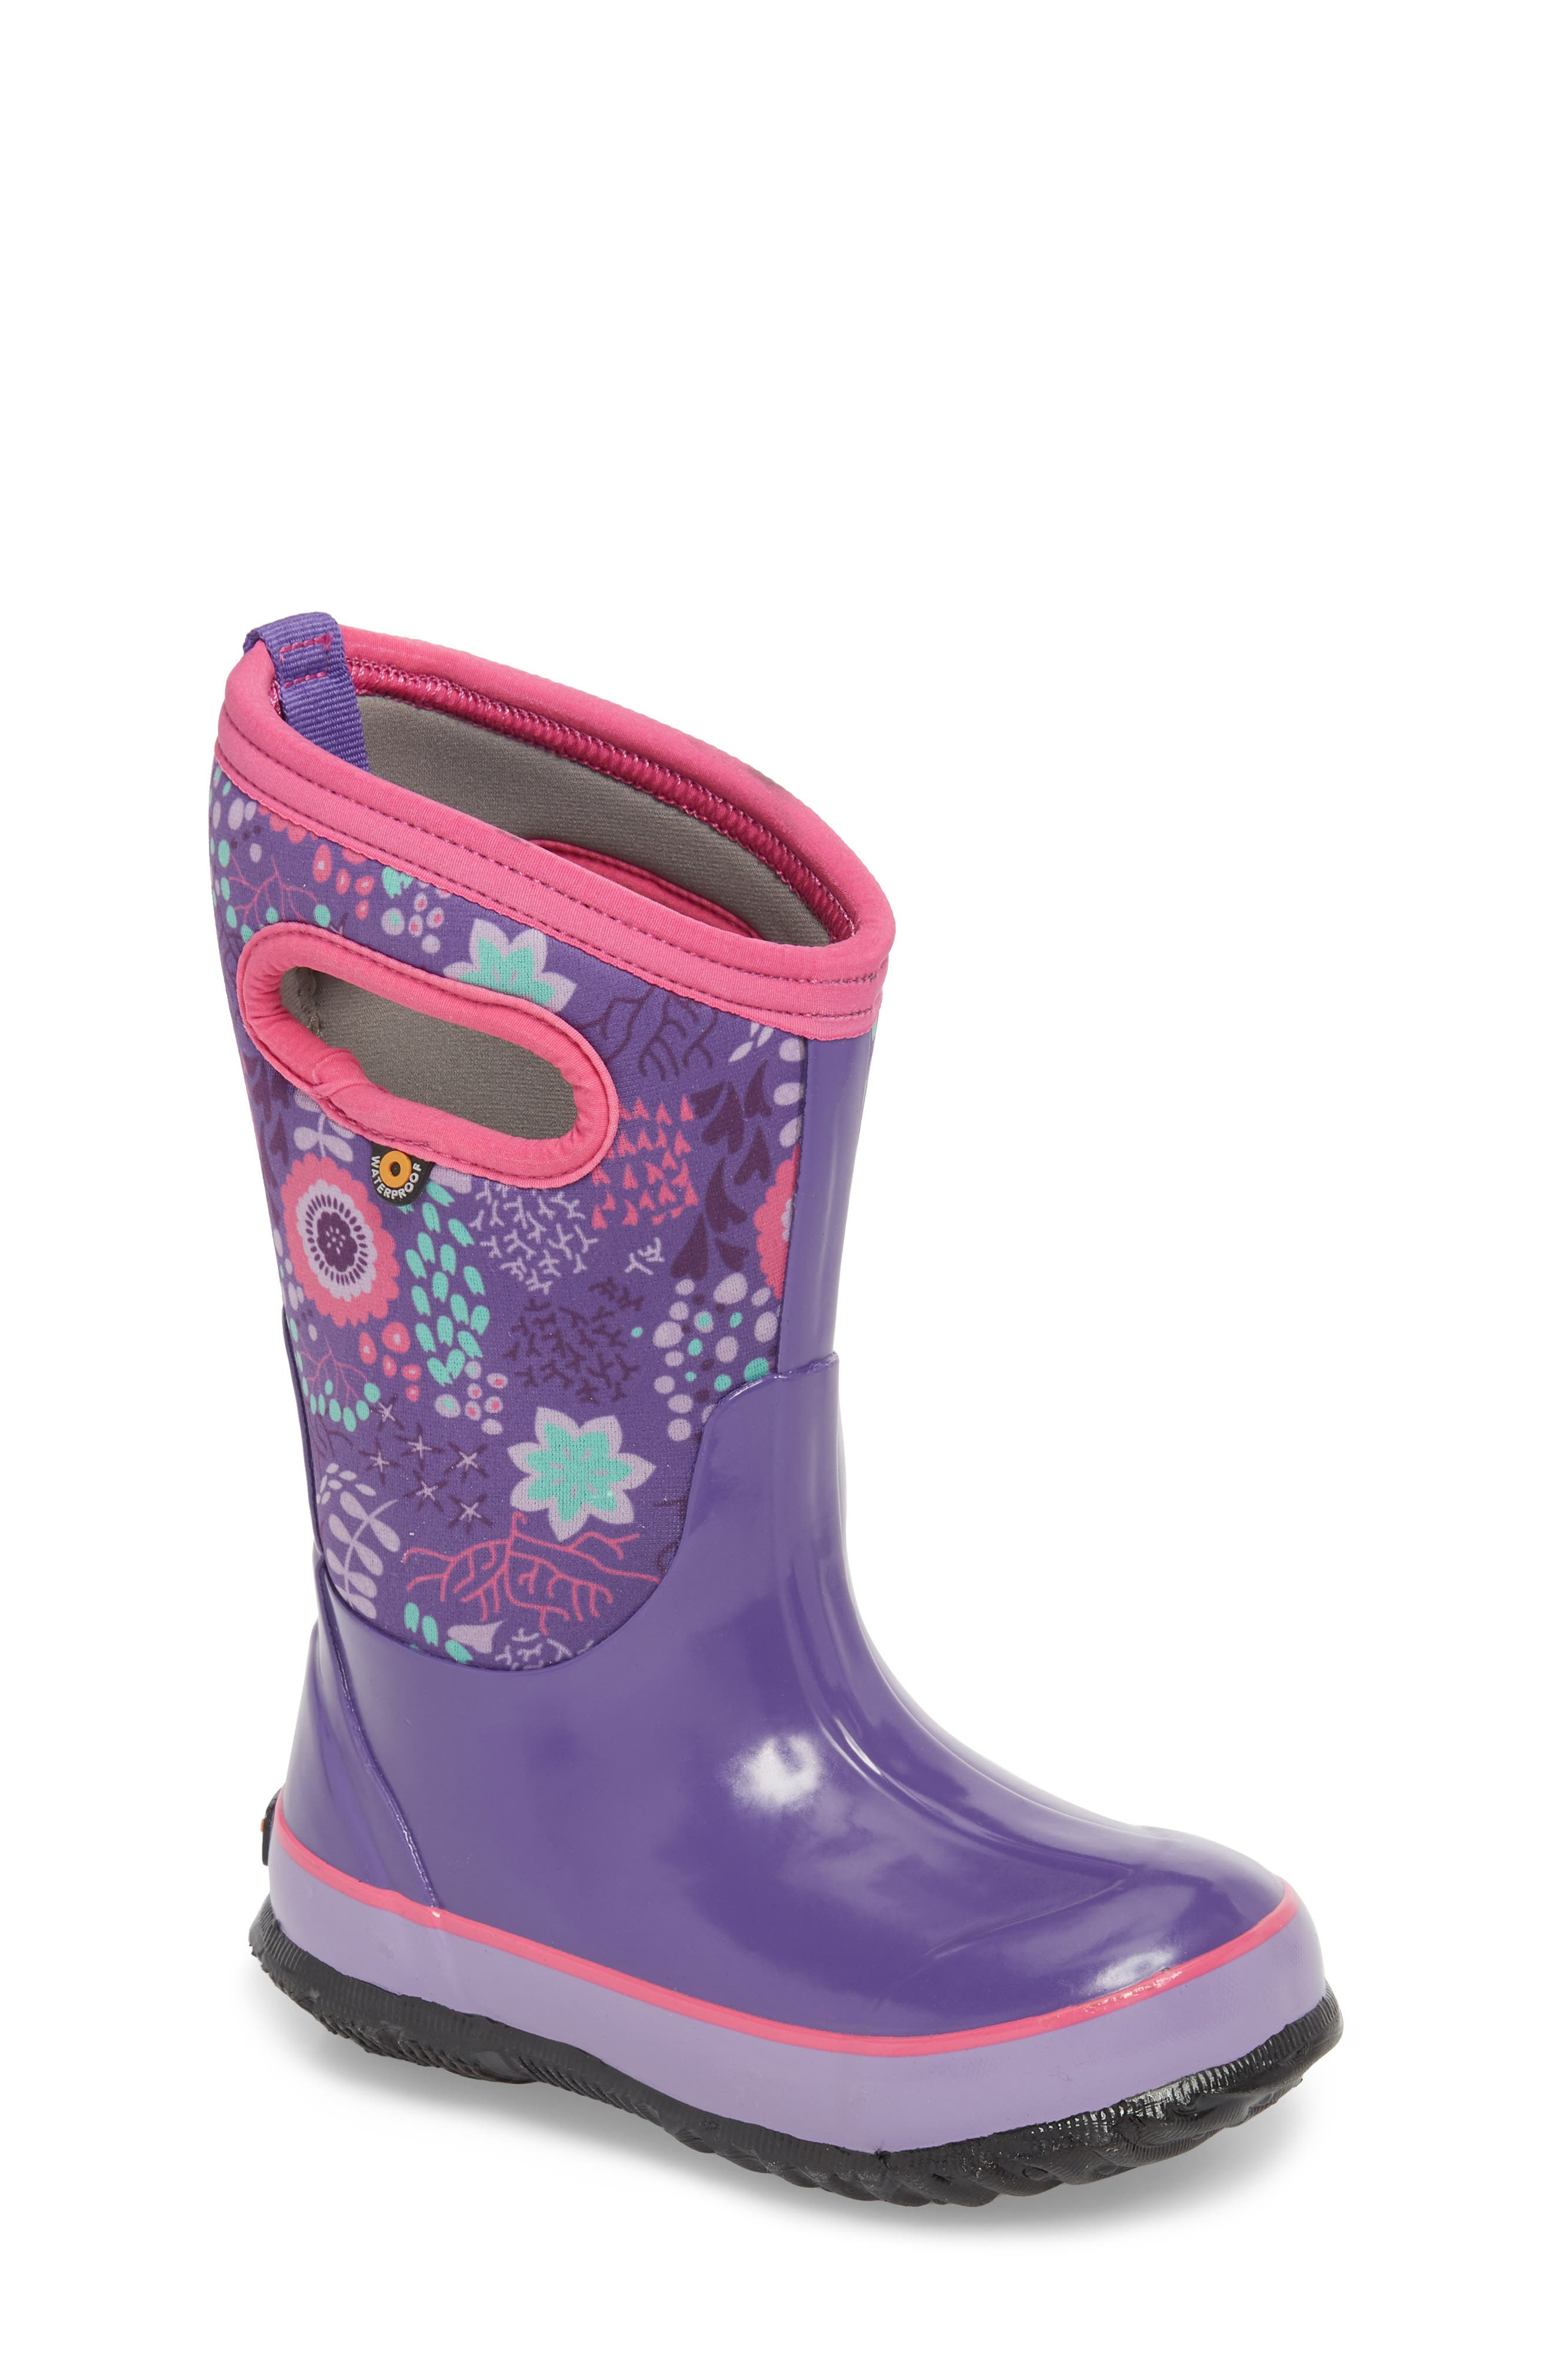 BOGS Classic Reef Insulated Print Waterproof Boot, Main, color, 540